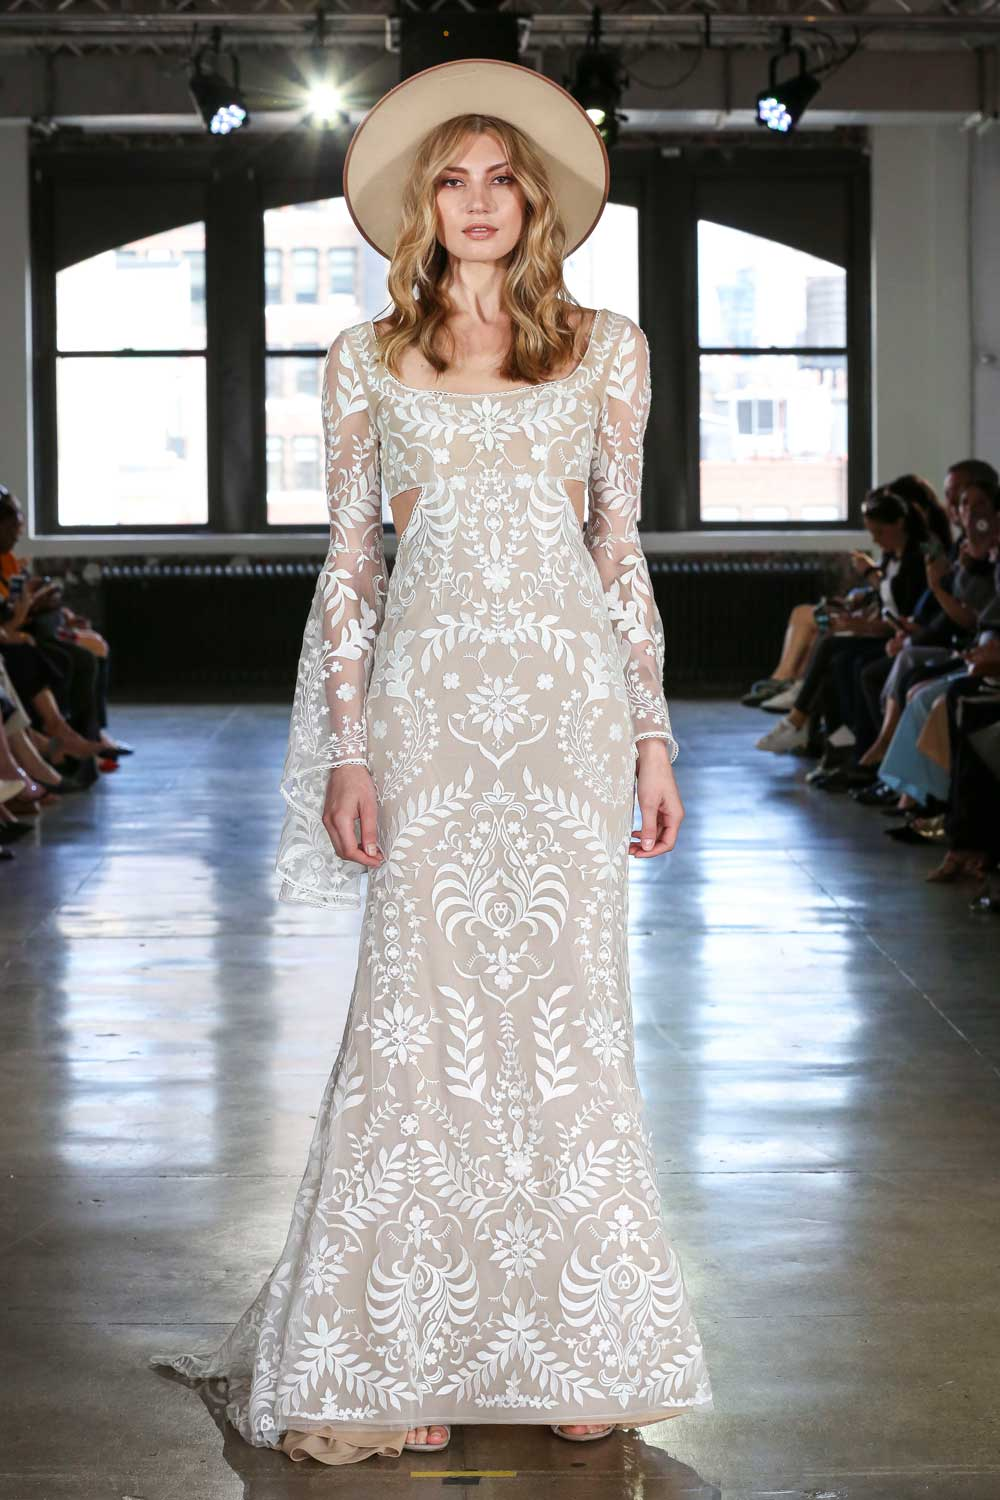 70's Inspired Bridal Gowns by Willowby by Watters